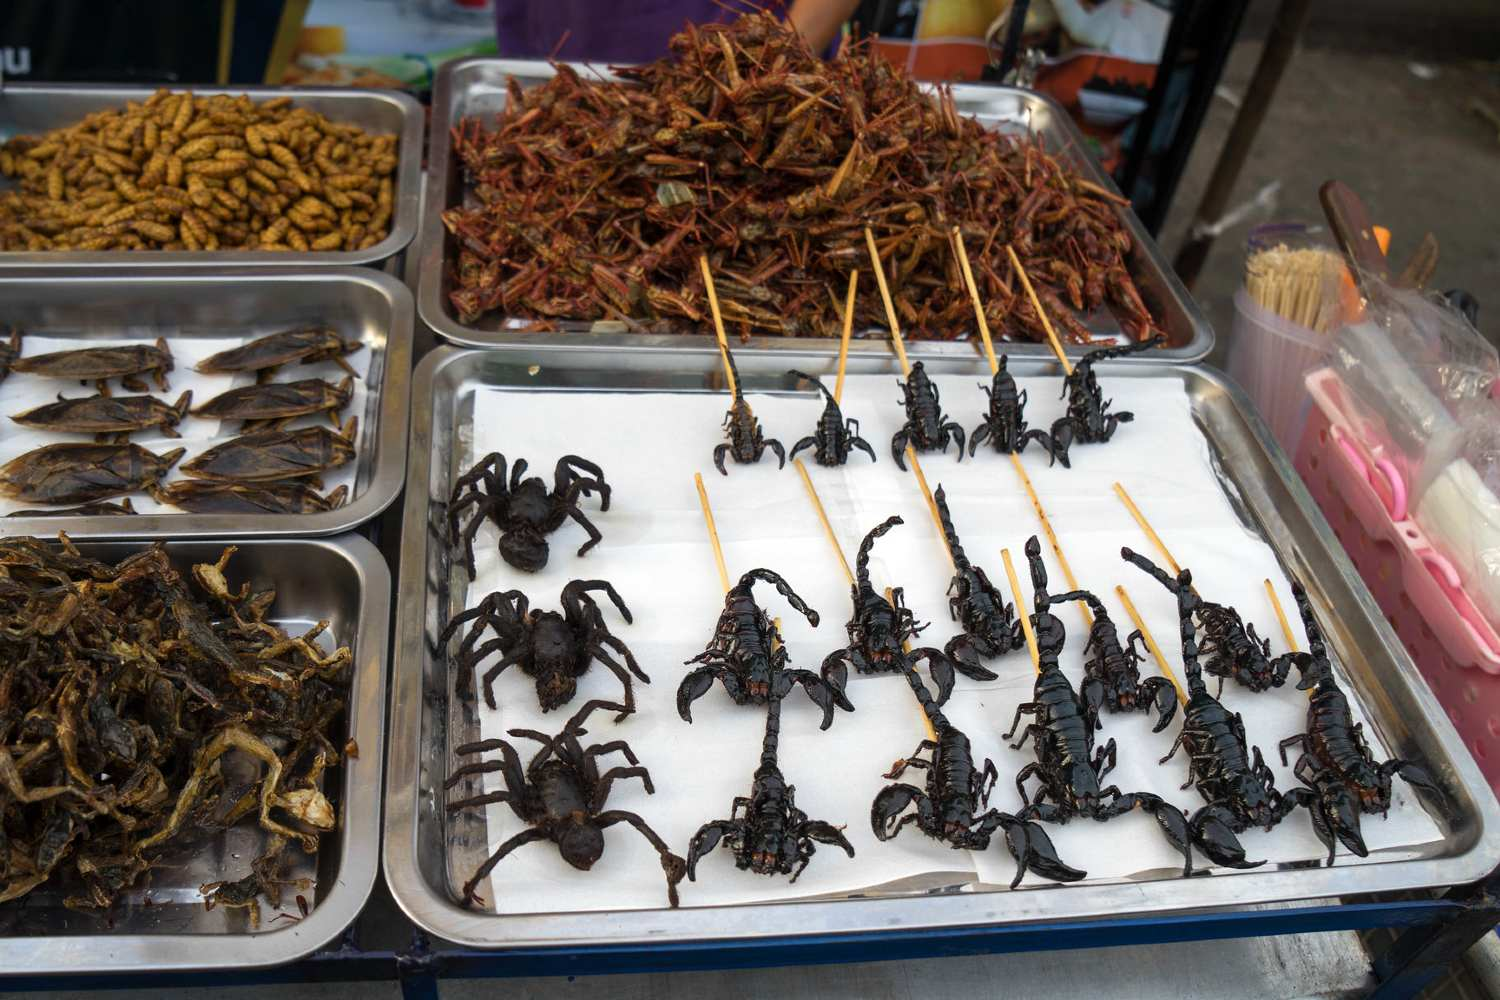 Scorpions on a stick and more scary critters to eat on Khao San Road